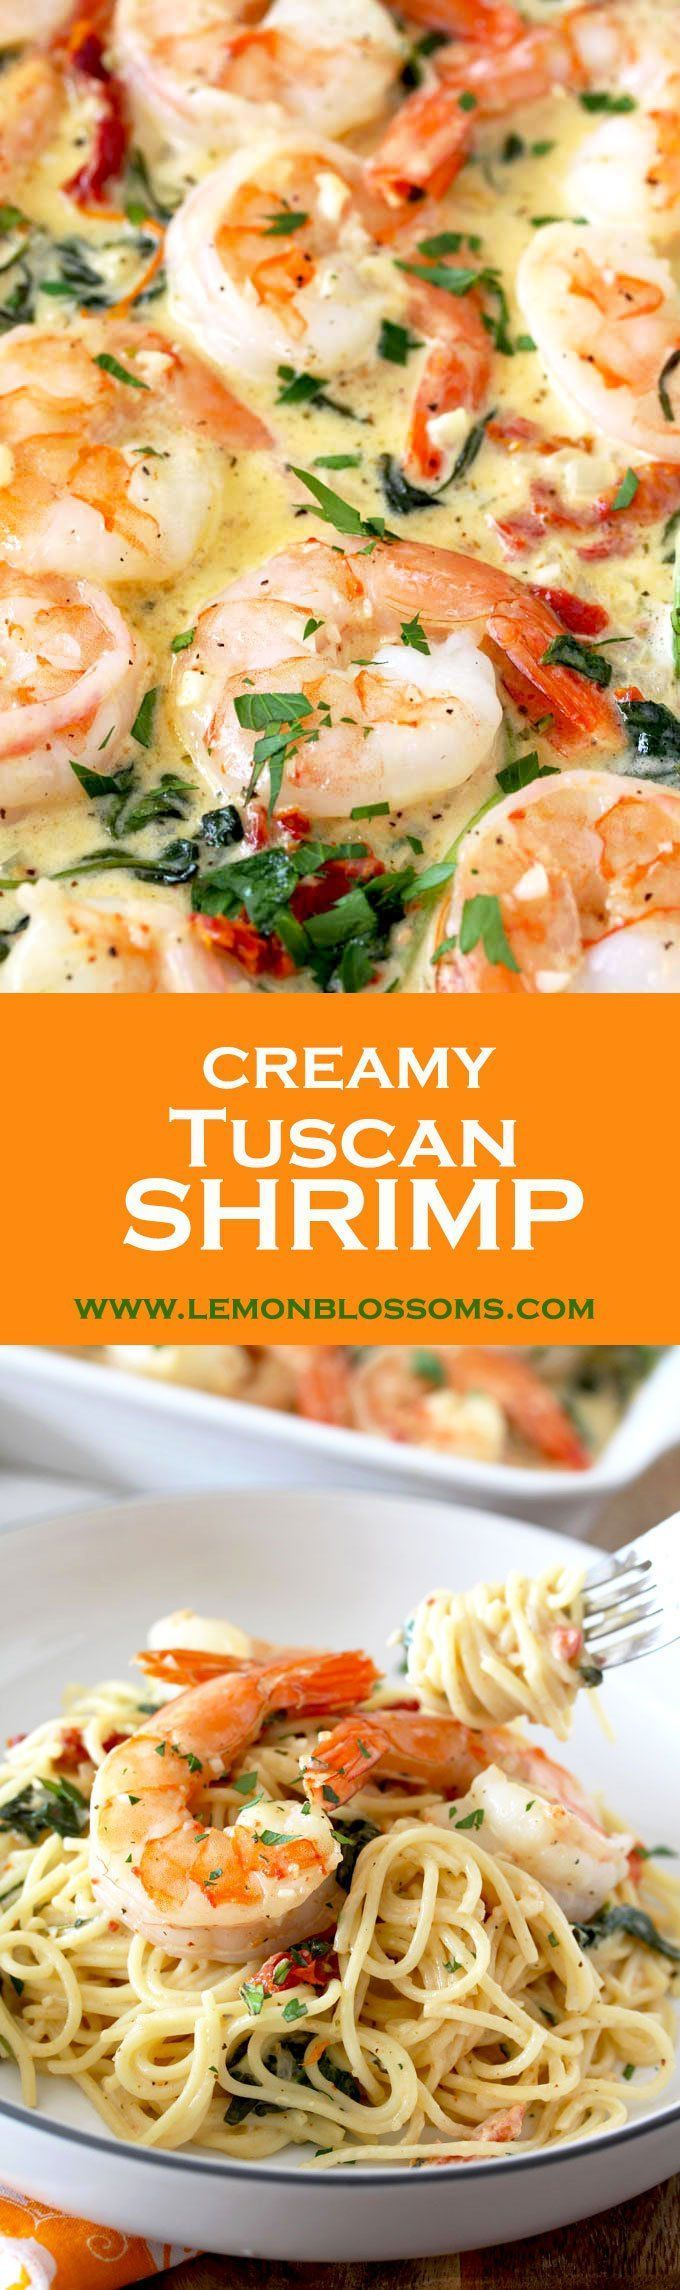 This Creamy Tuscan Shrimp is loaded with flavor! Succulent shrimp in creamy and rich garlic Parmesan sauce with sun dried tomatoes and spinach. The perfect dish to impress your guests. #Tuscanshrimp #shrimp #Parmesan #pasta #easy